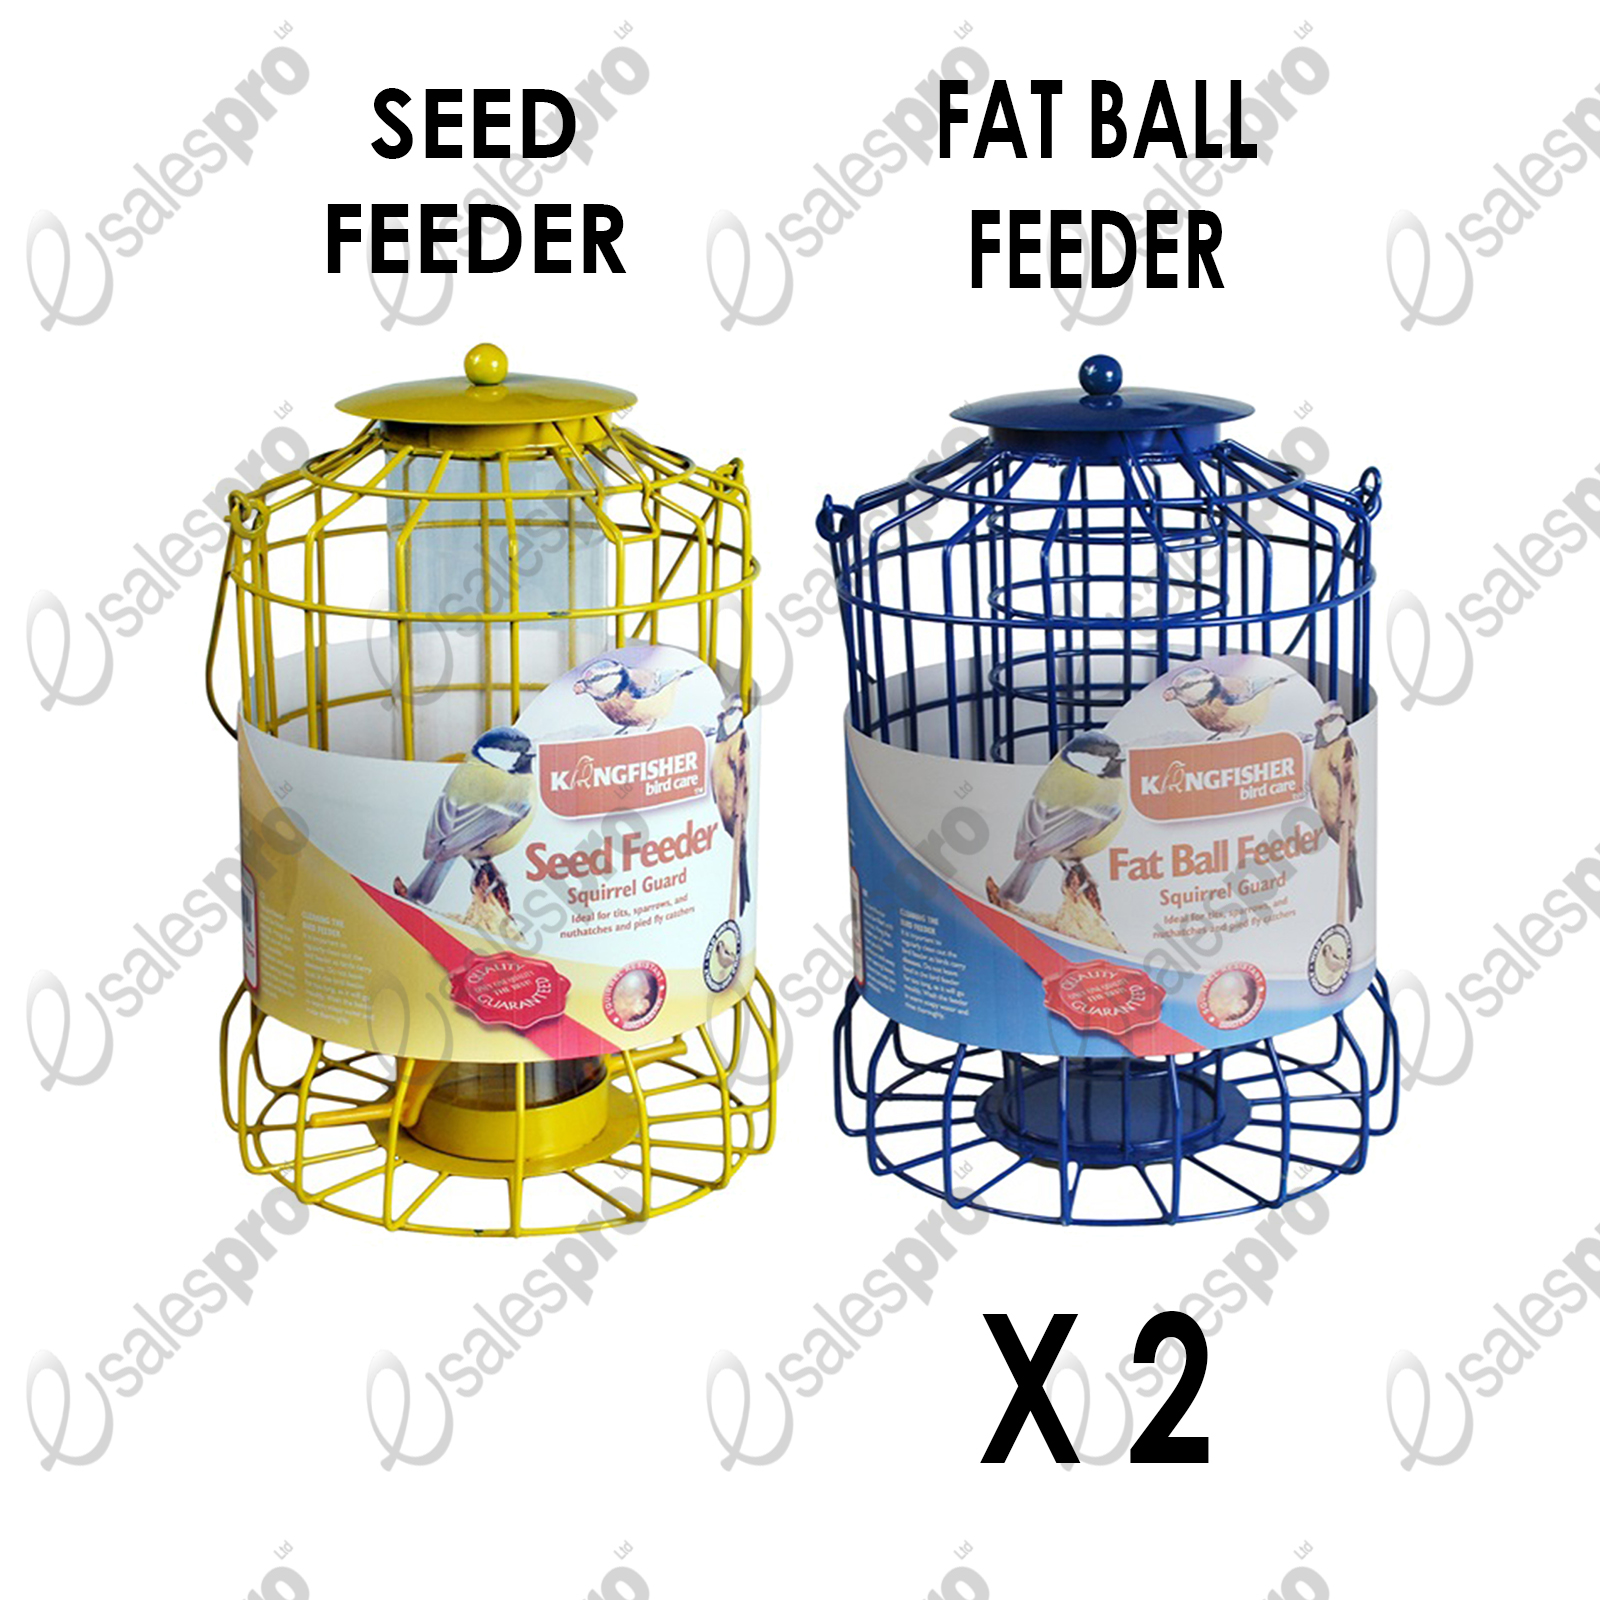 Kingfisher Squirrel Guard Bird Feeders Feed Discount Deals Seed.